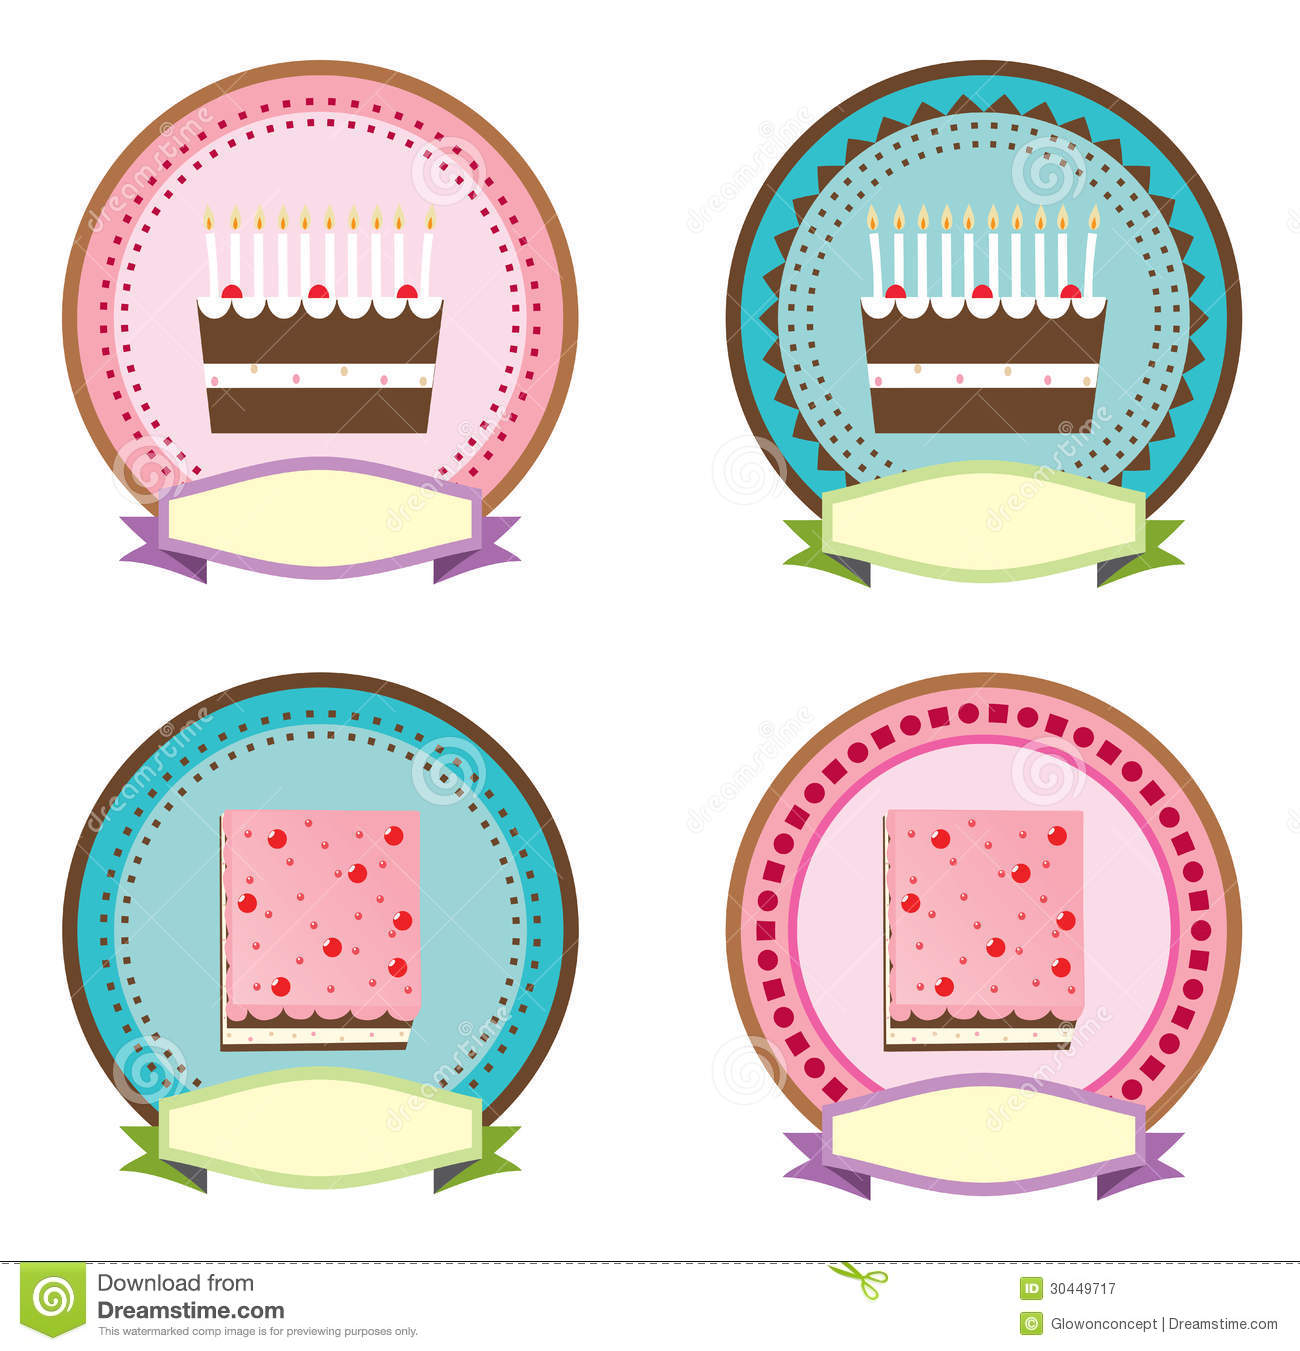 Design of icons logos for cake or birthday with illustrator.